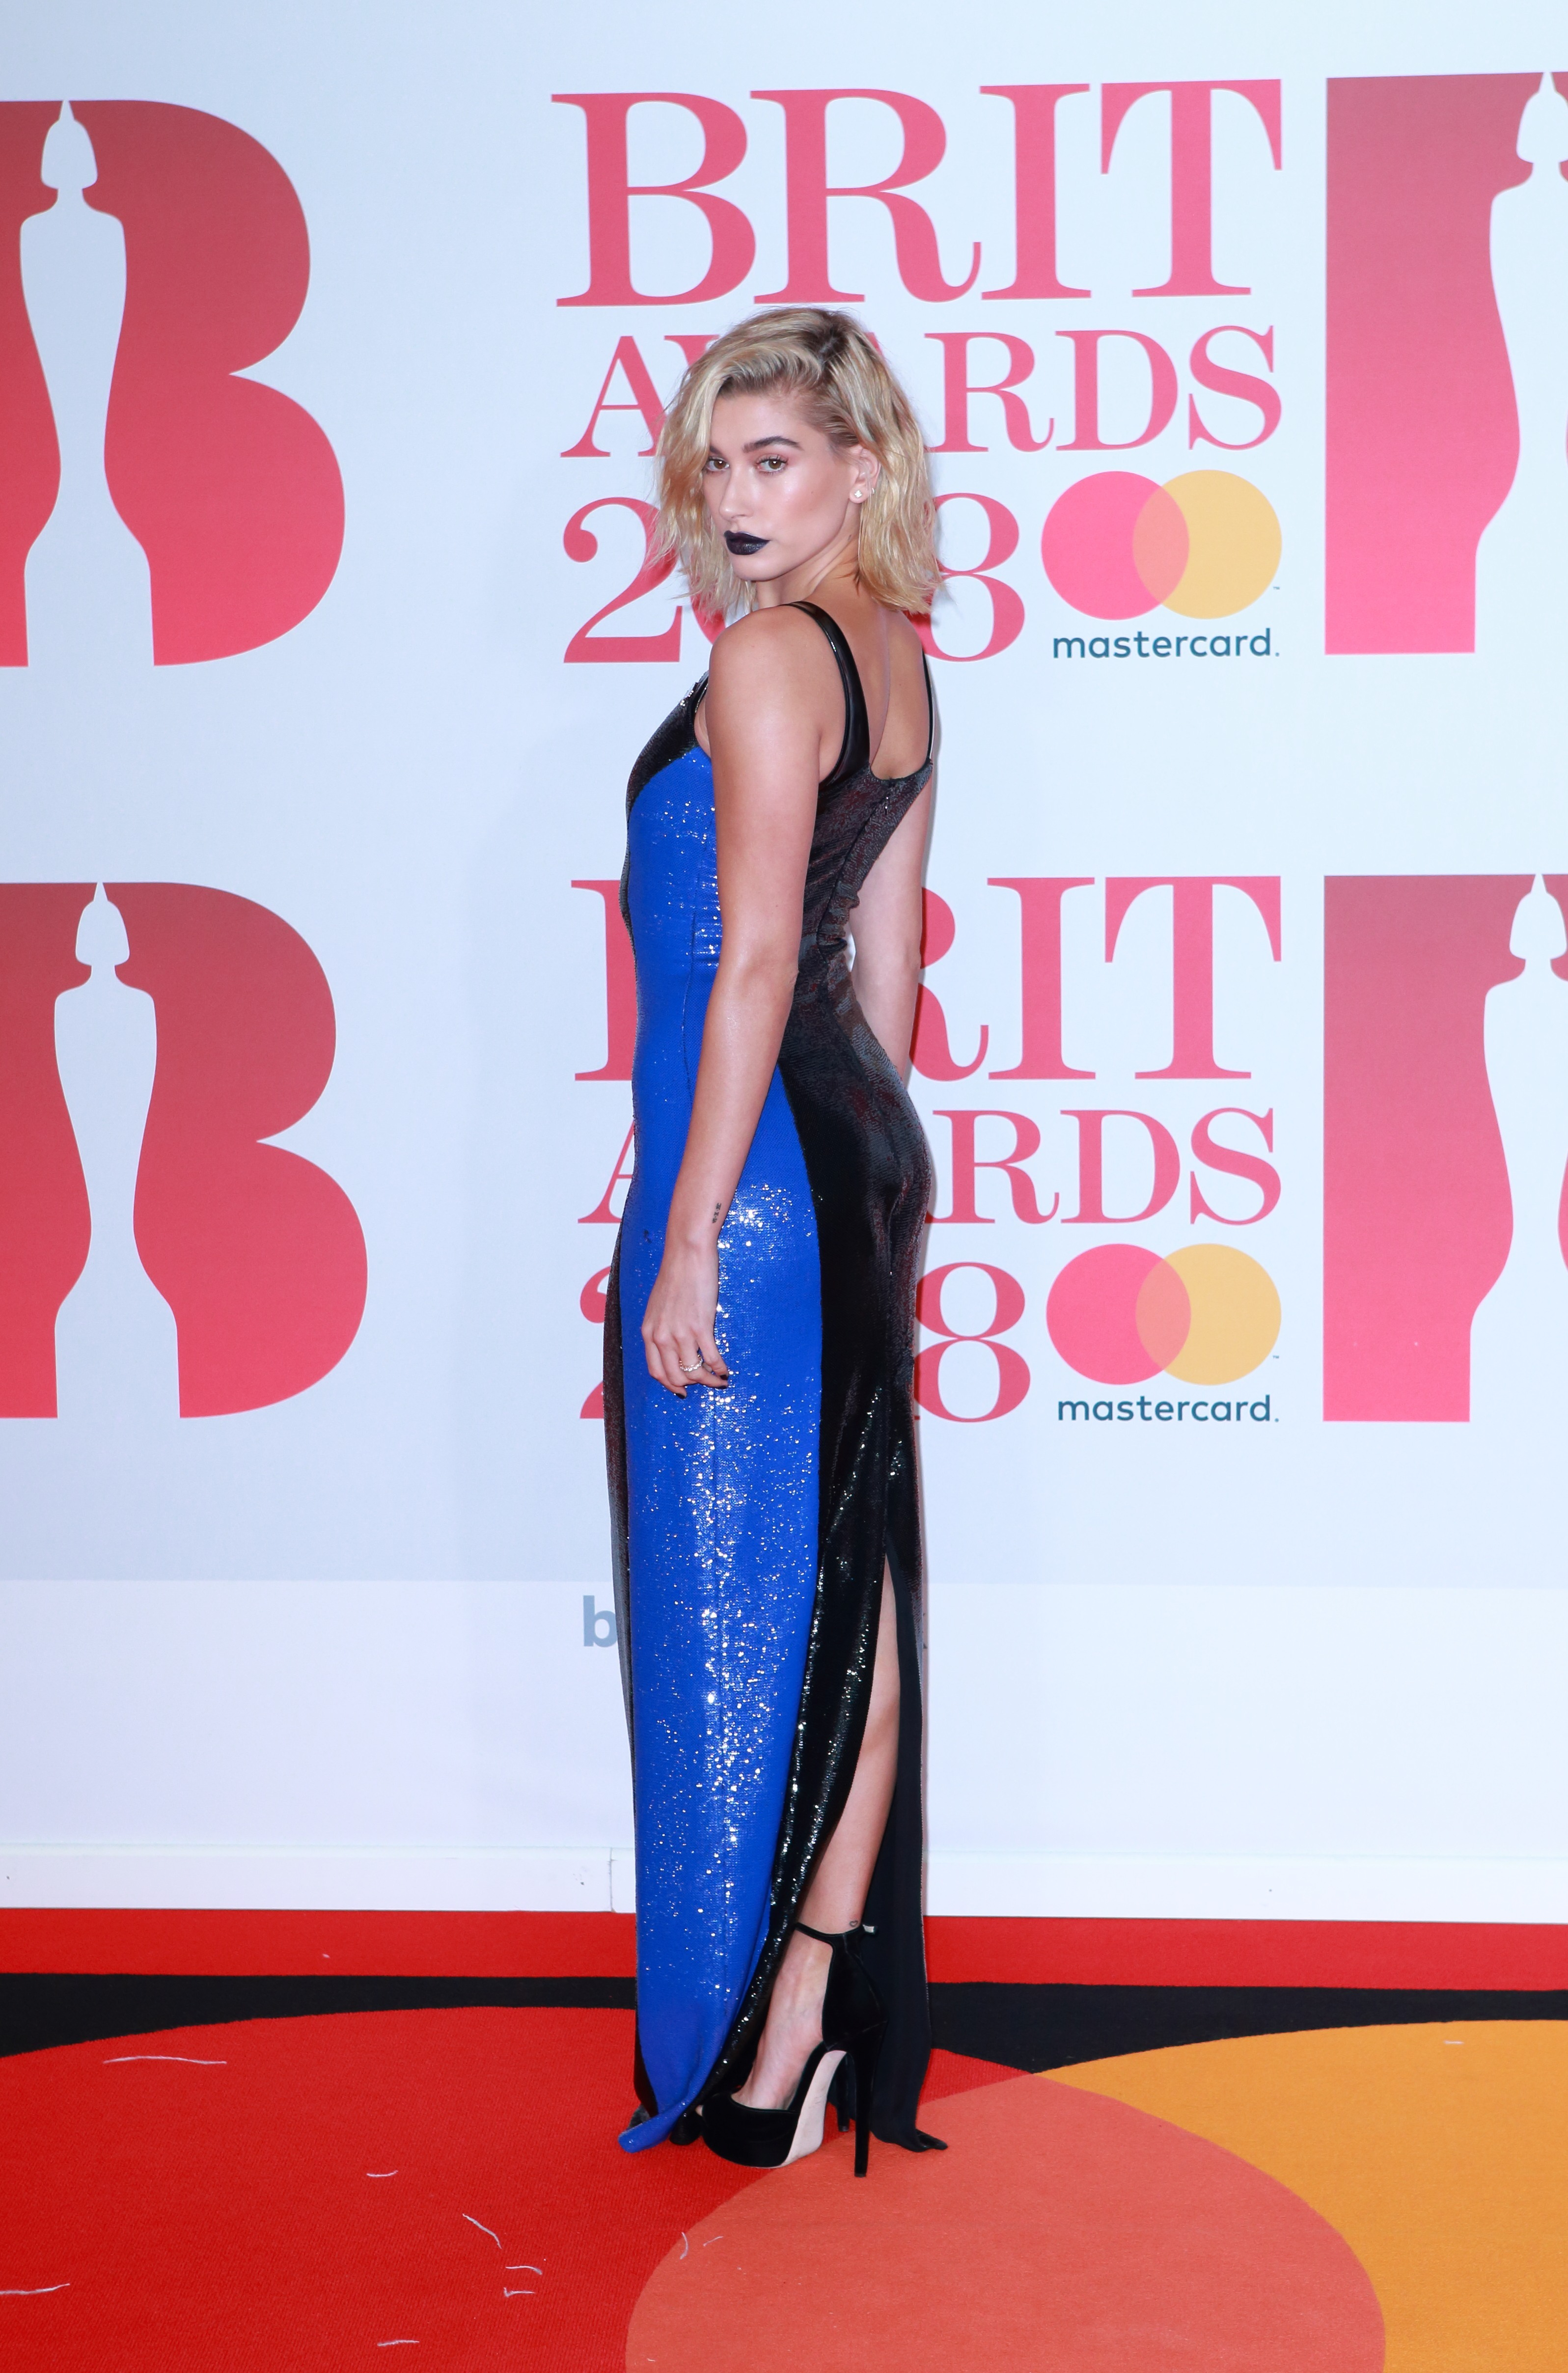 Hailey Baldwin arrive on the red carpet for The BRIT Awards 2018 at The O2 Arena in London, UK. <P> Pictured: Hailey Baldwin <B>Ref: SPL1662525  210218  </B><BR/> Picture by: Flynet - Splash News<BR/> </P><P> <B>Splash News and Pictures</B><BR/> Los Angeles:	310-821-2666<BR/> New York:	212-619-2666<BR/> London:	870-934-2666<BR/> <span id=